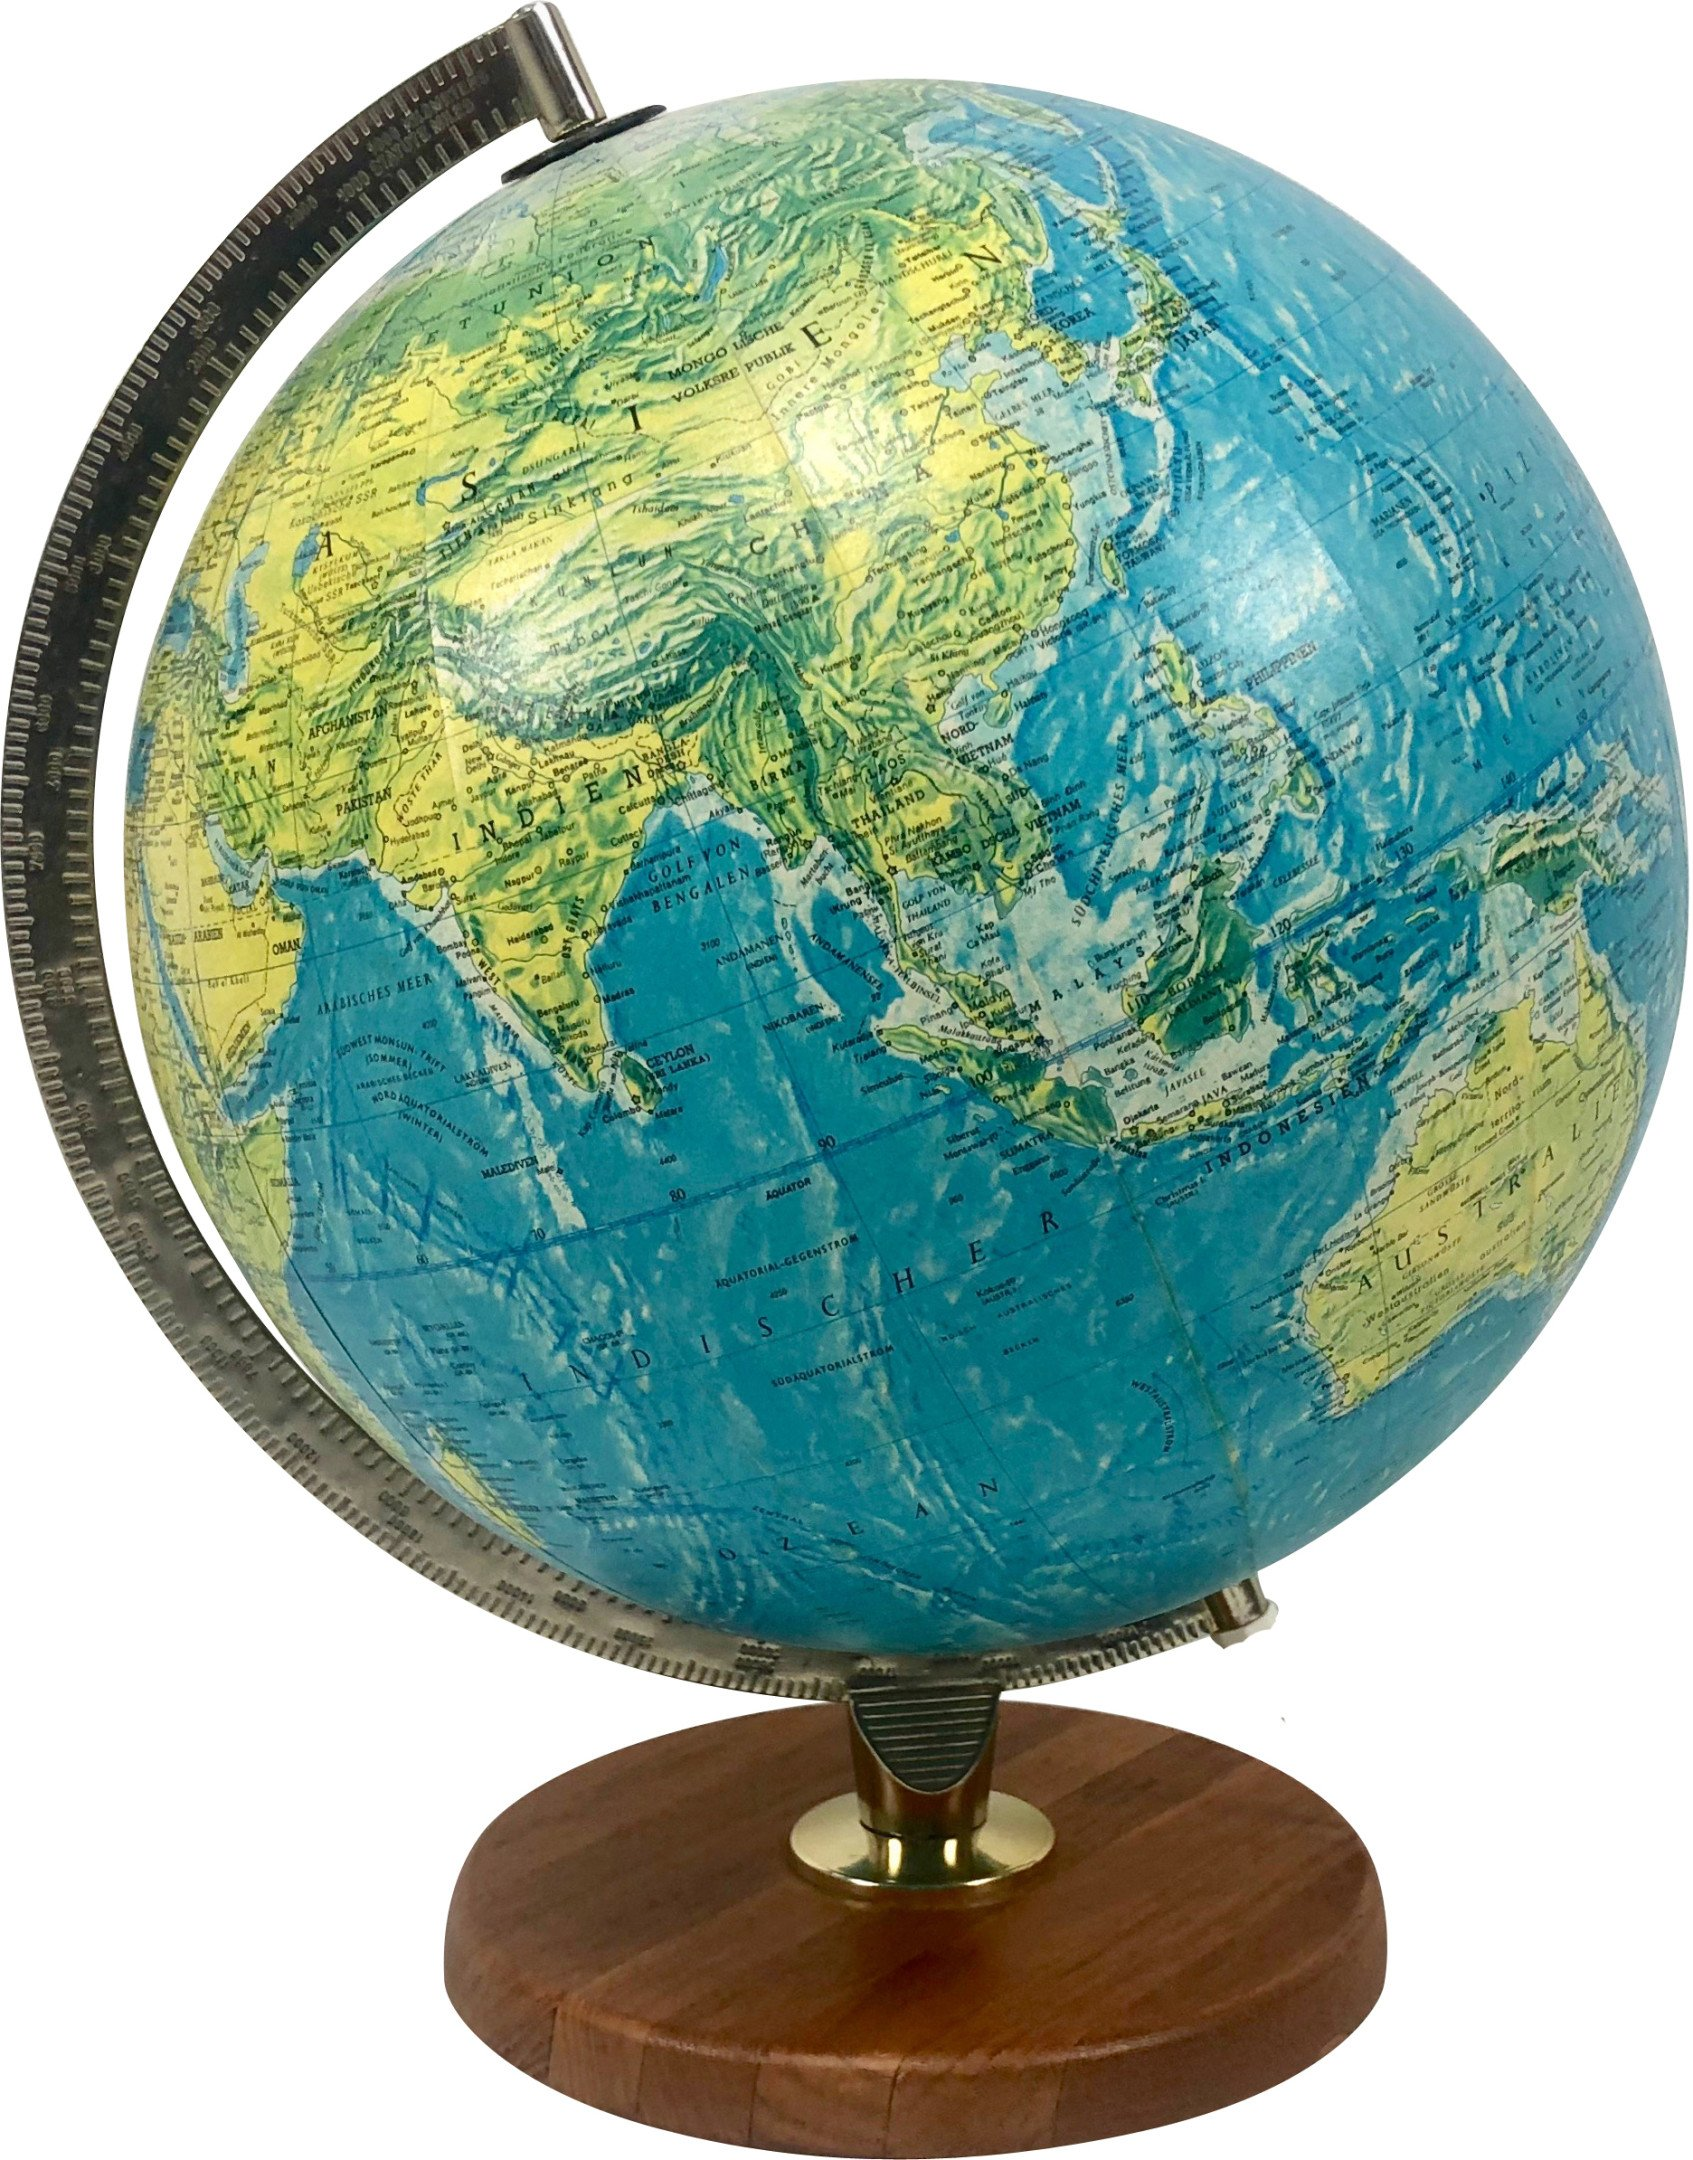 Globe, Scan-Globe AS, Denmark, 1970s